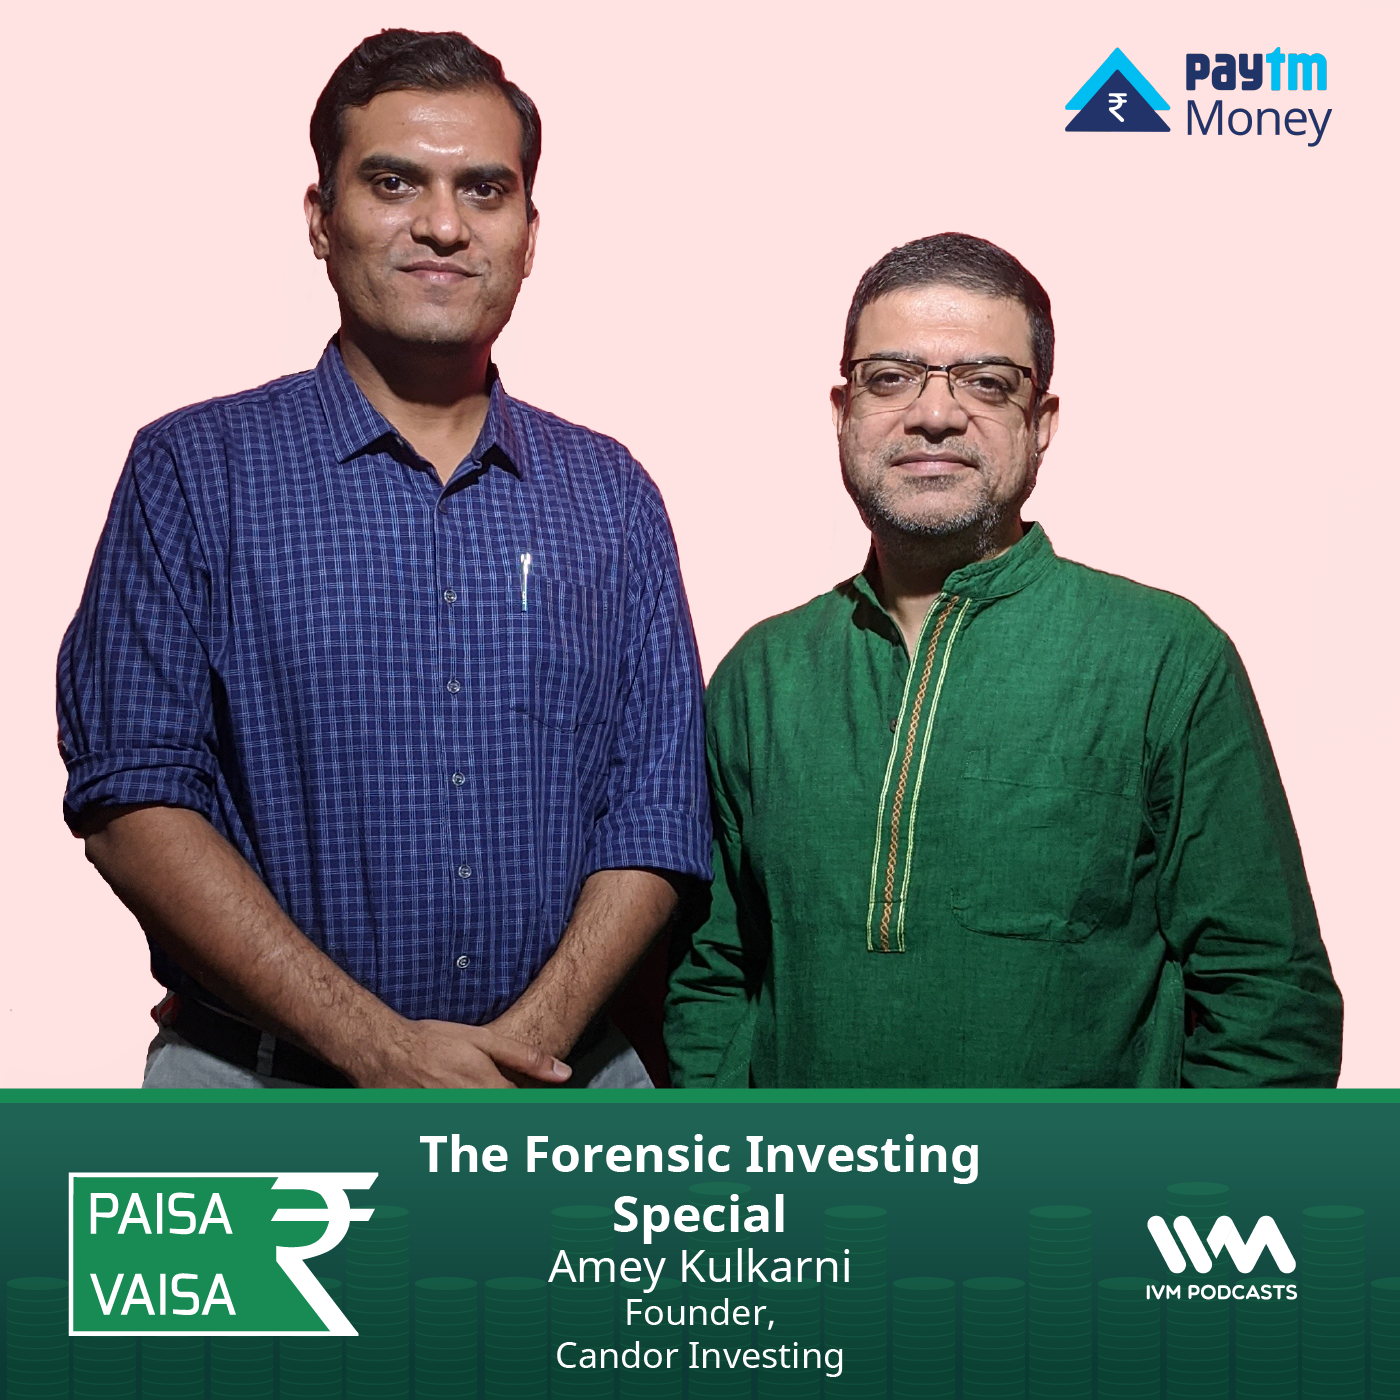 Ep. 230: The Forensic Investing Special with Amey Kulkarni.